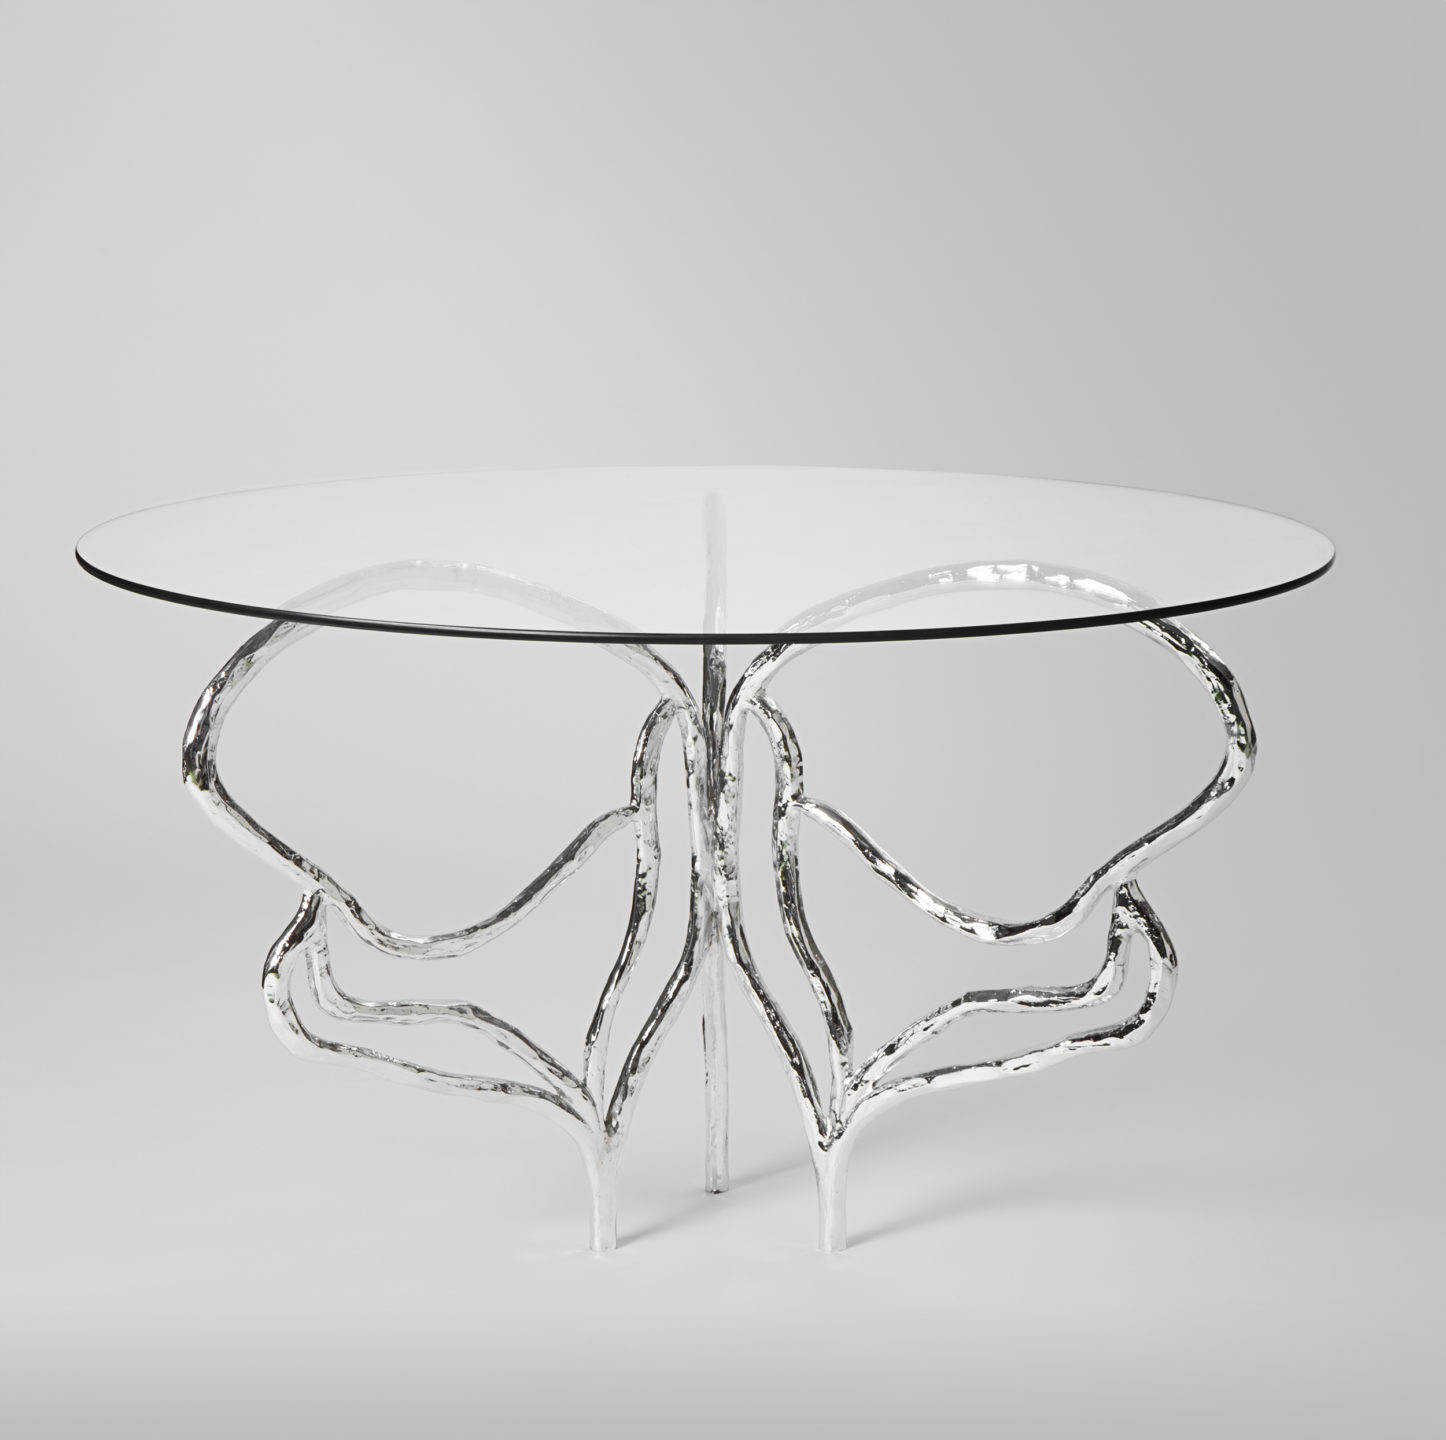 WHIMSY-table-2-nicole-fuller-product-information